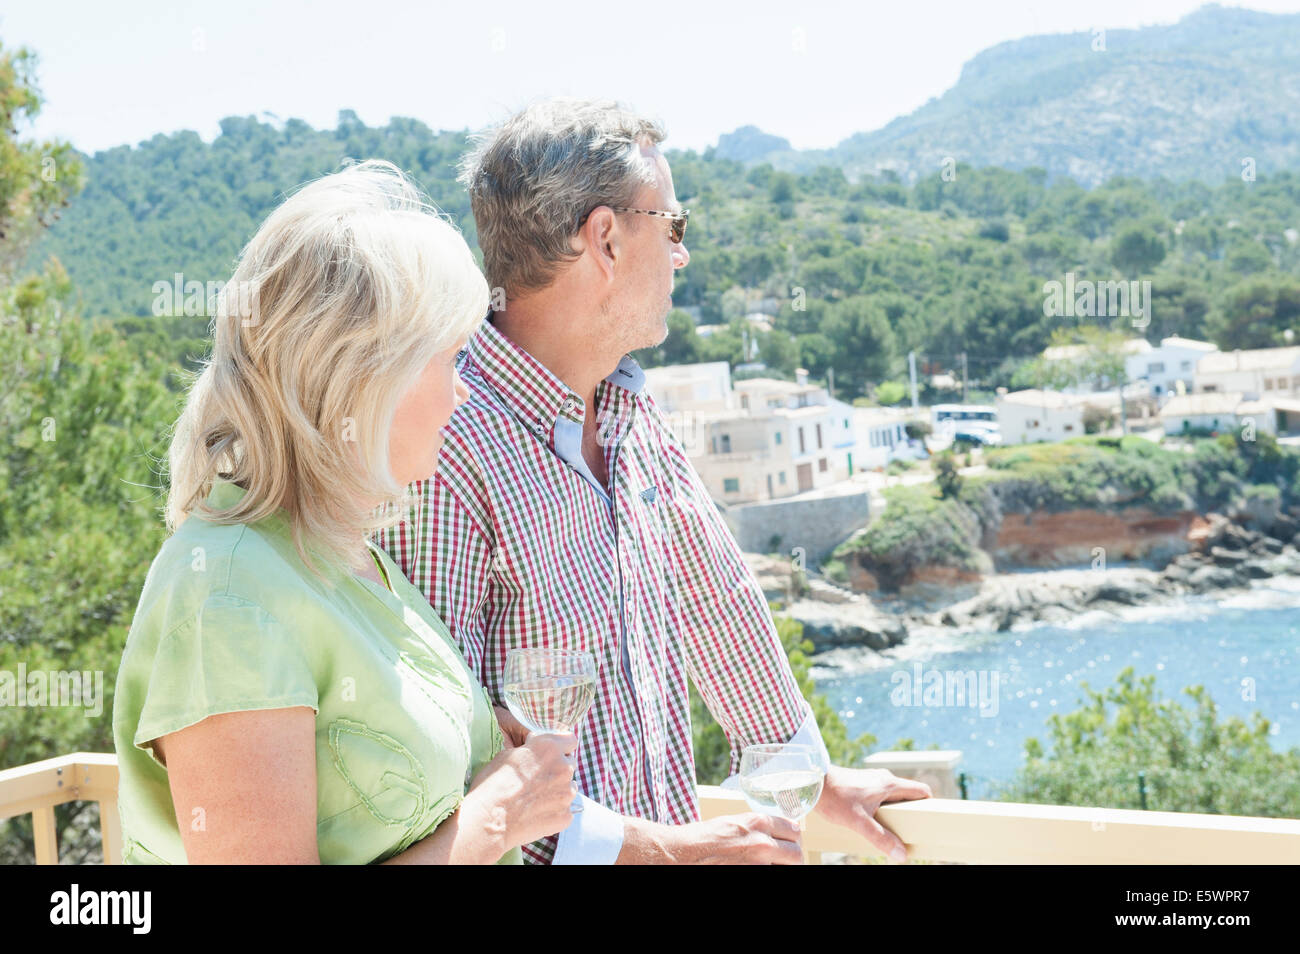 Couple celebrating on holiday, Mallorca, Spain - Stock Image